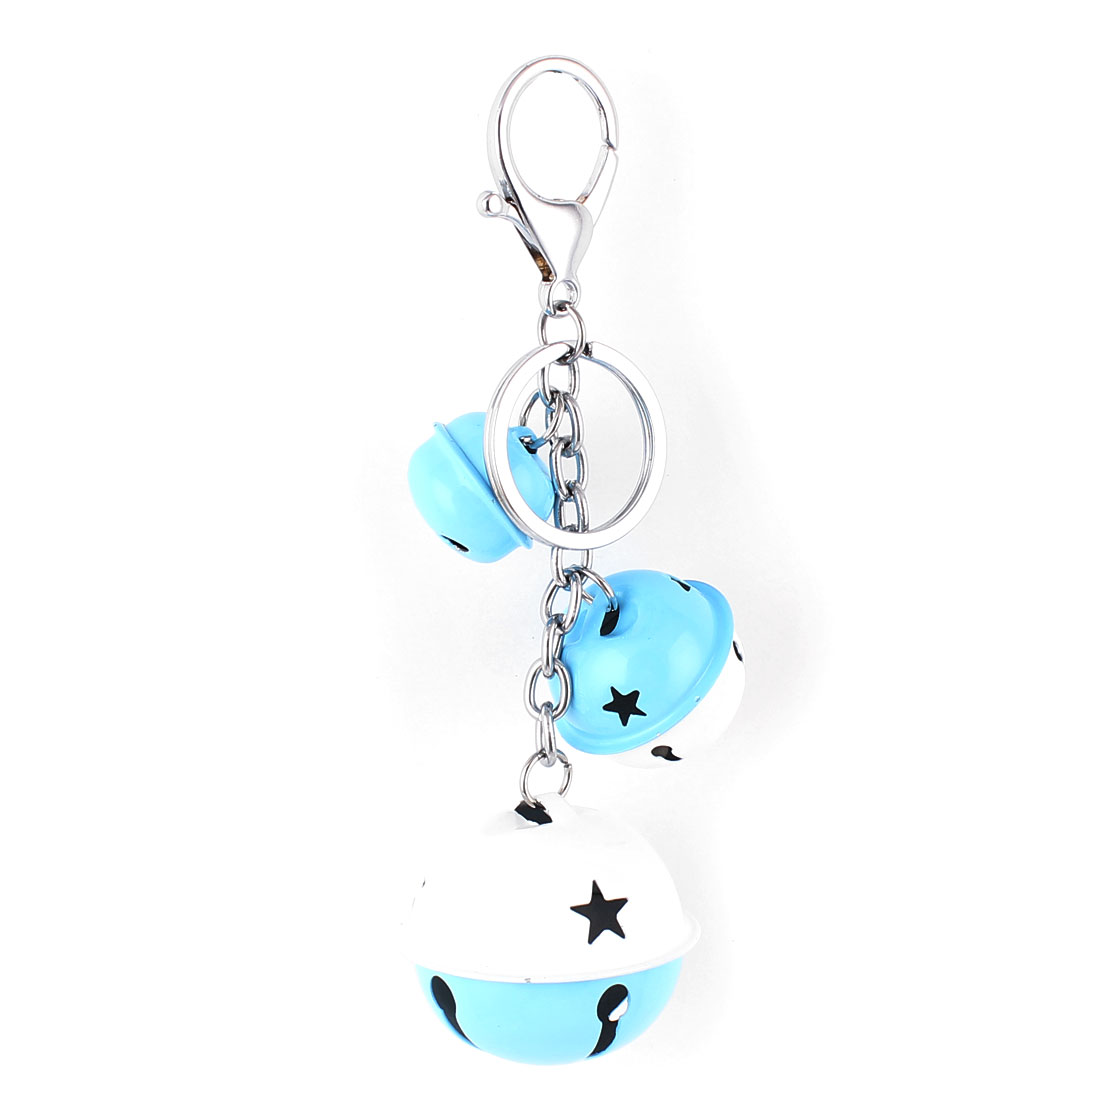 Bells Pendant Swivel Lobster Clasp Keyring Keychain Key Chain Ring White Blue